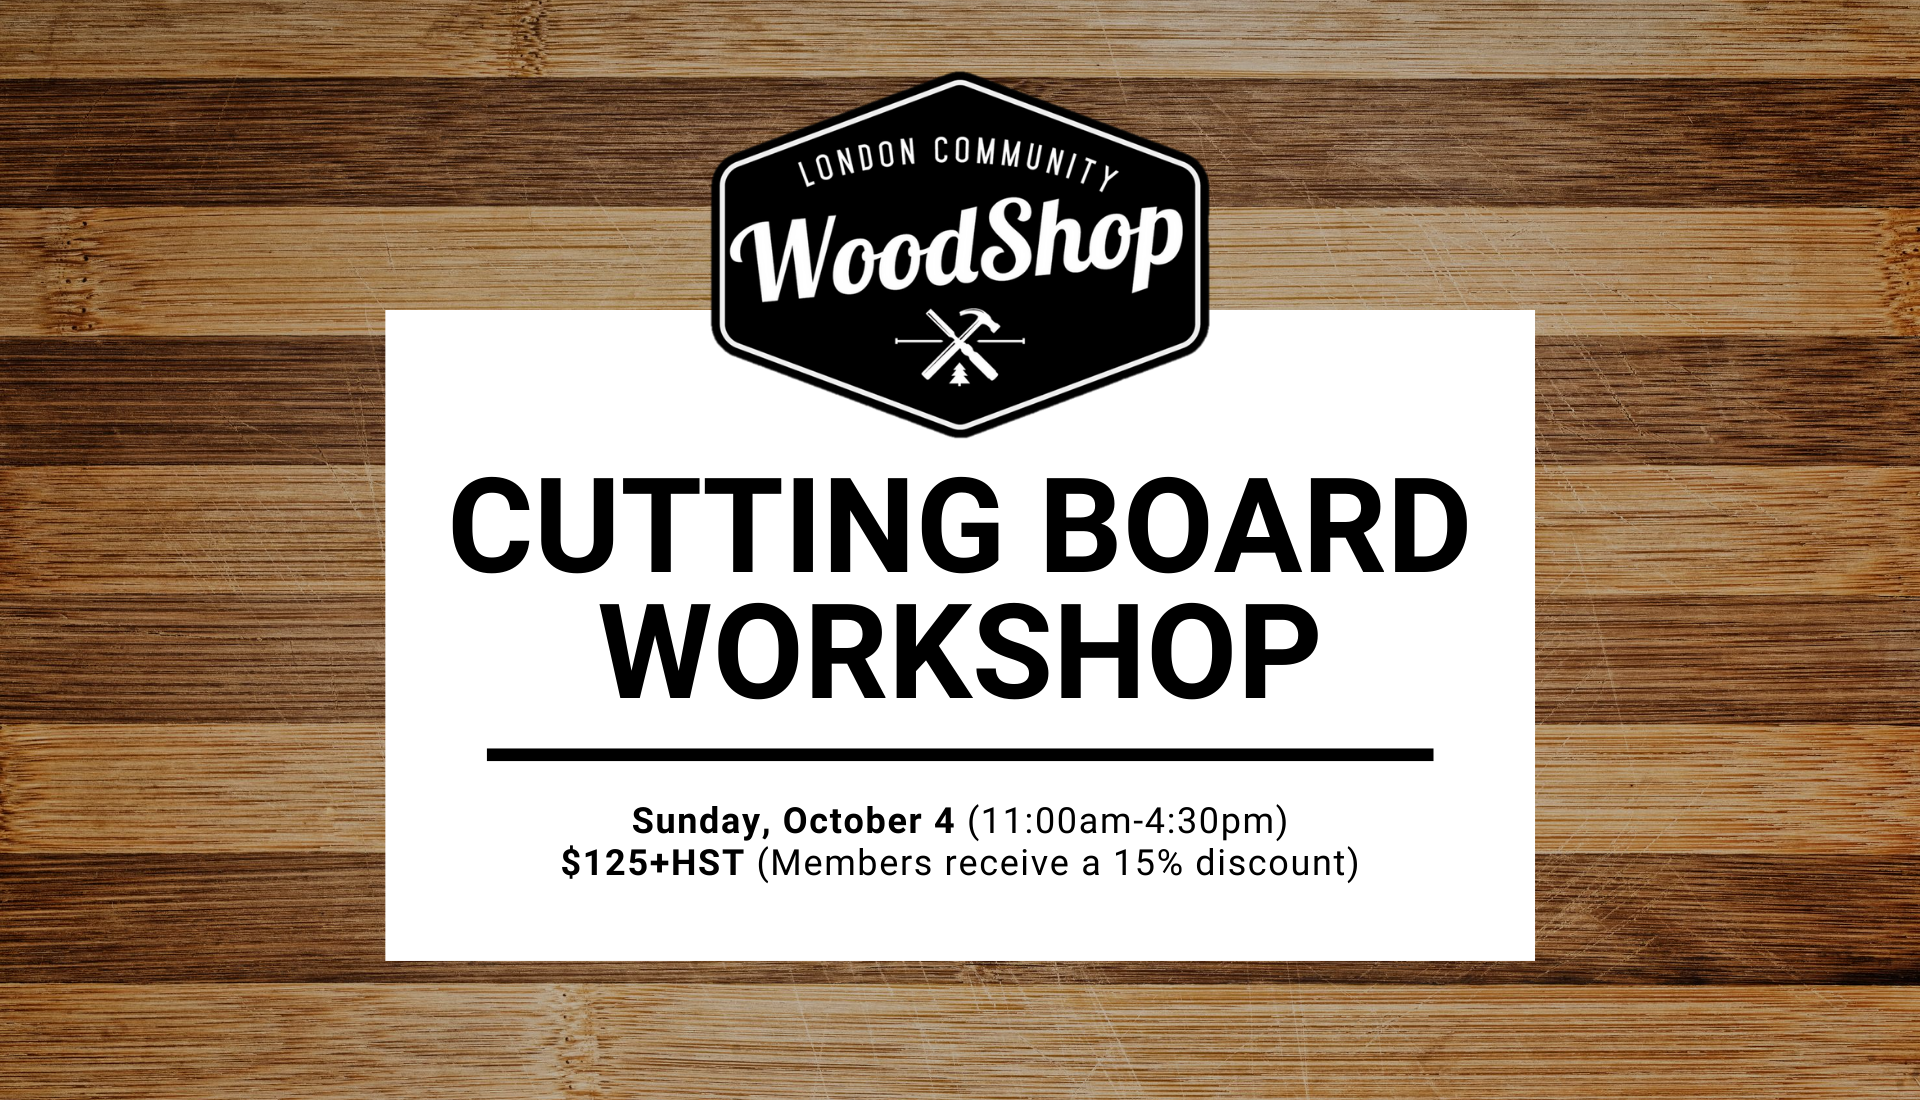 Cutting Board Workshop - Sunday, October 4